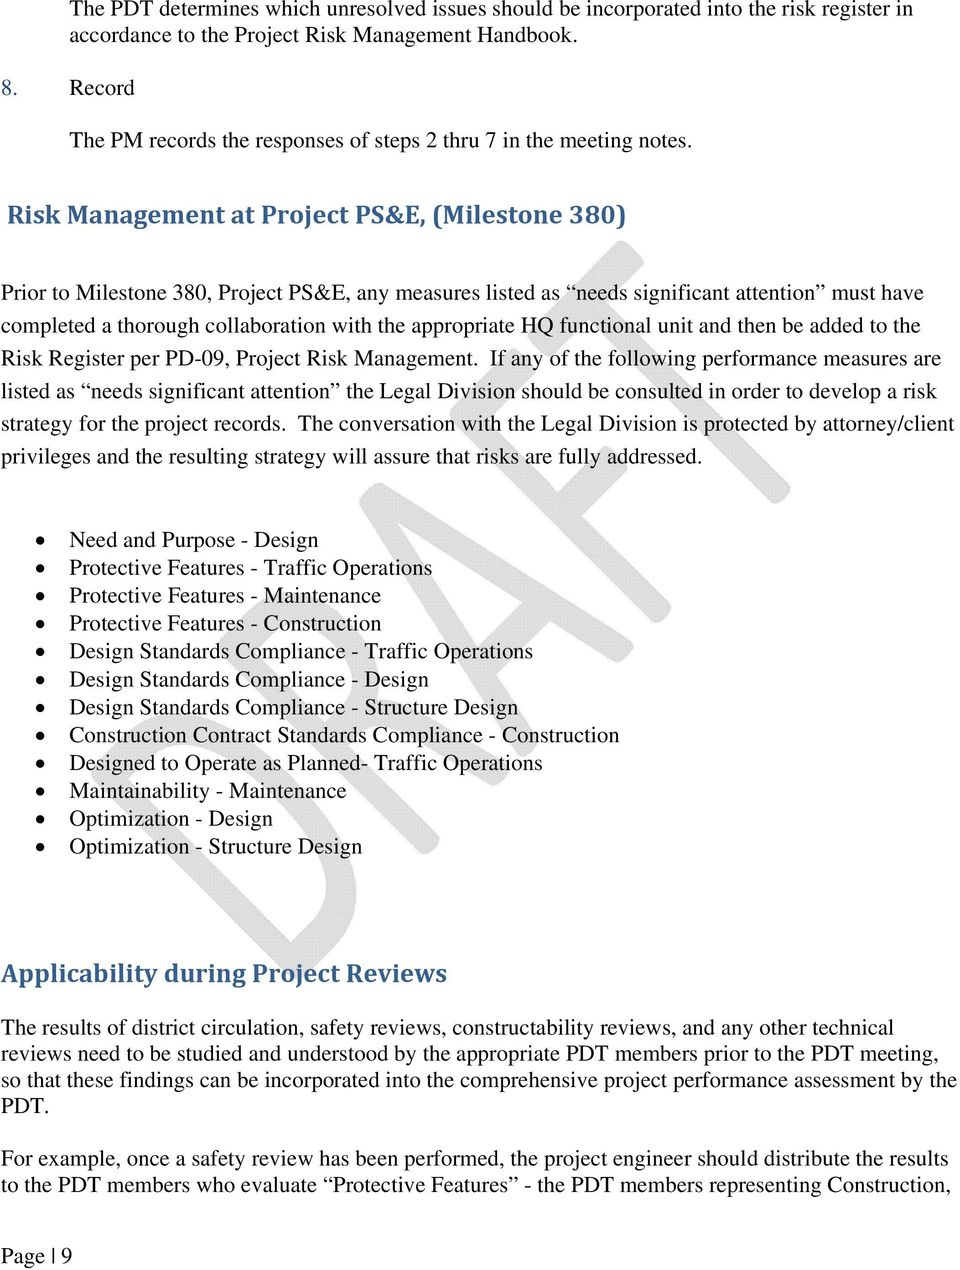 Risk Management at Project PS&E, (Milestone 380) Prior to Milestone 380, Project PS&E, any measures listed as needs significant attention must have completed a thorough collaboration with the